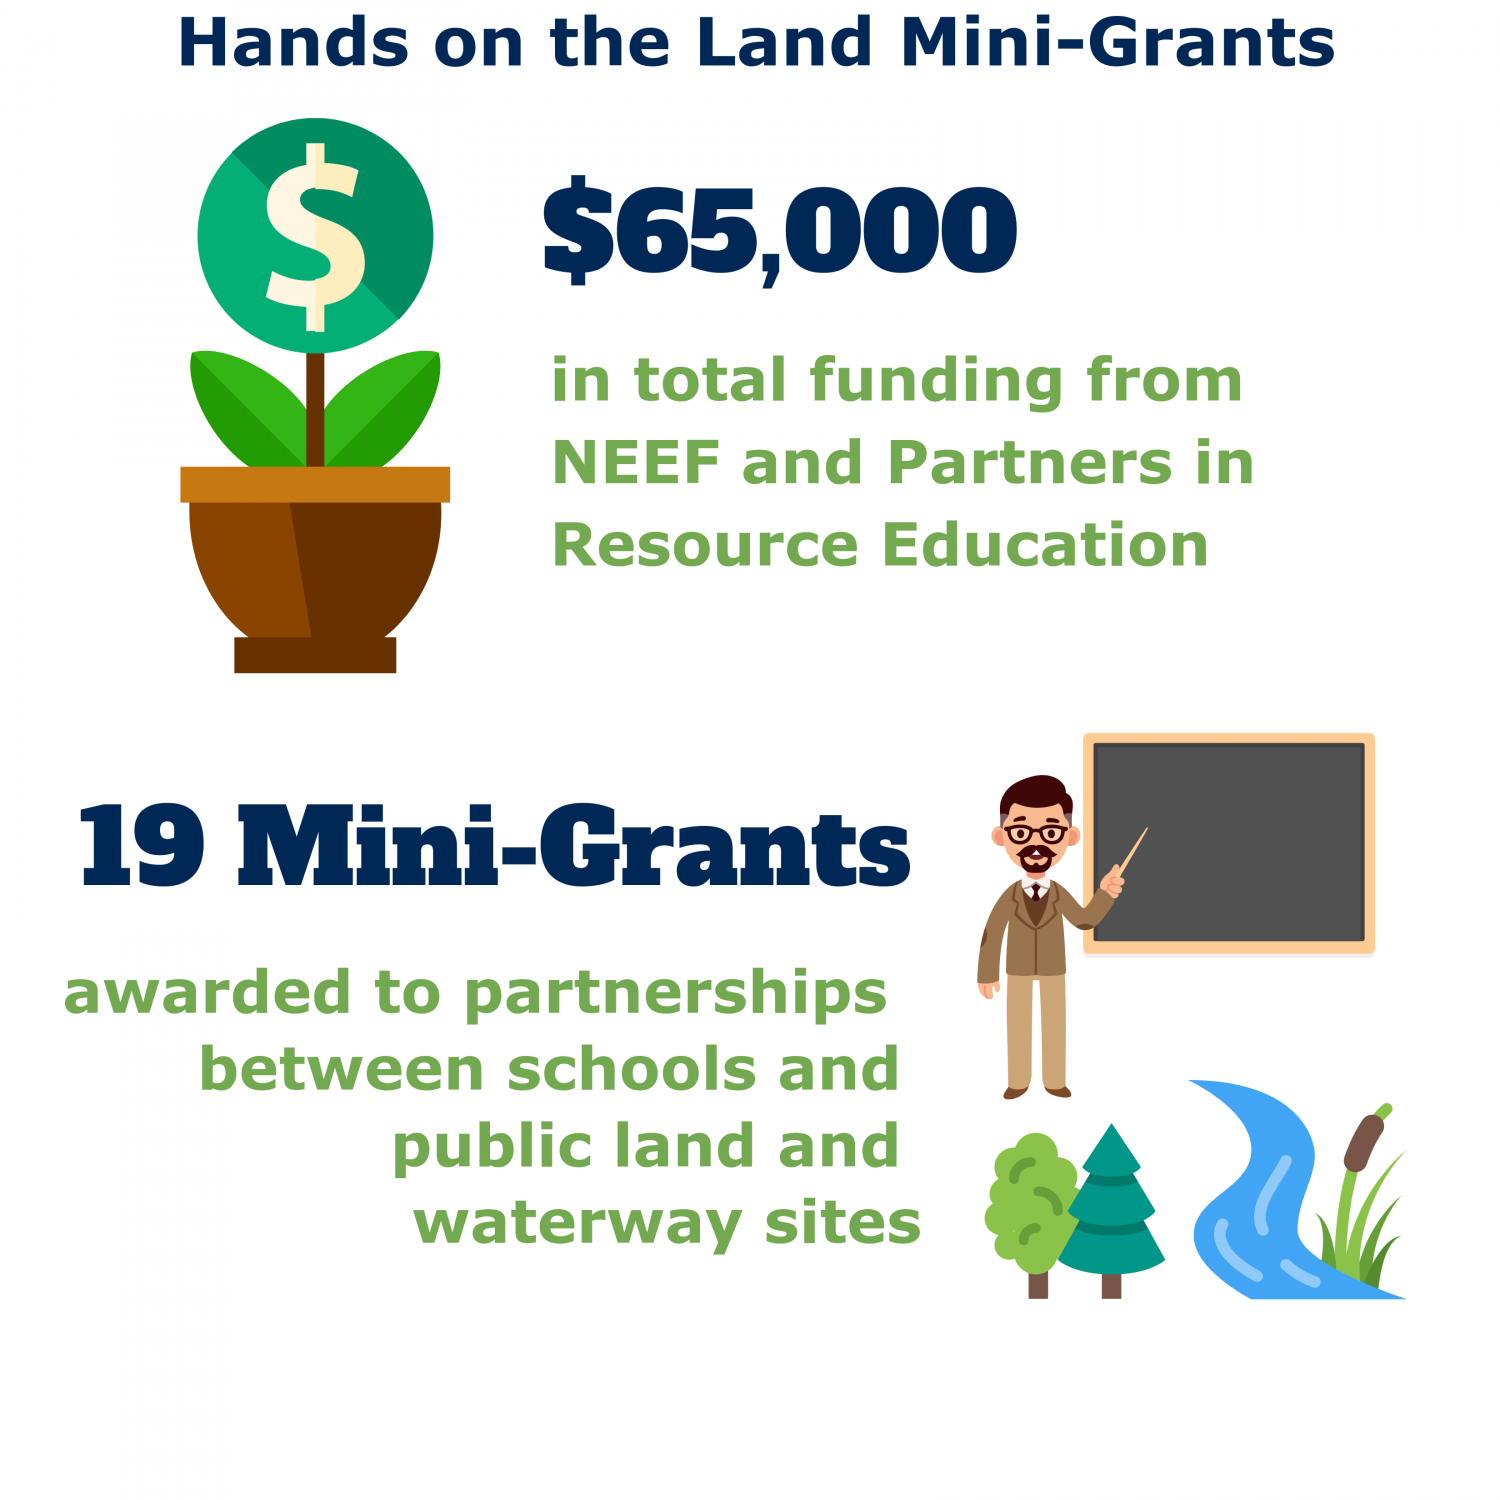 Hands on the Land Mini-Grants: $65,000 in total funding from NEEF and Partners in Resource Education; 19 Mini-Grants awarded to partnerships between schools and public land and waterway sites